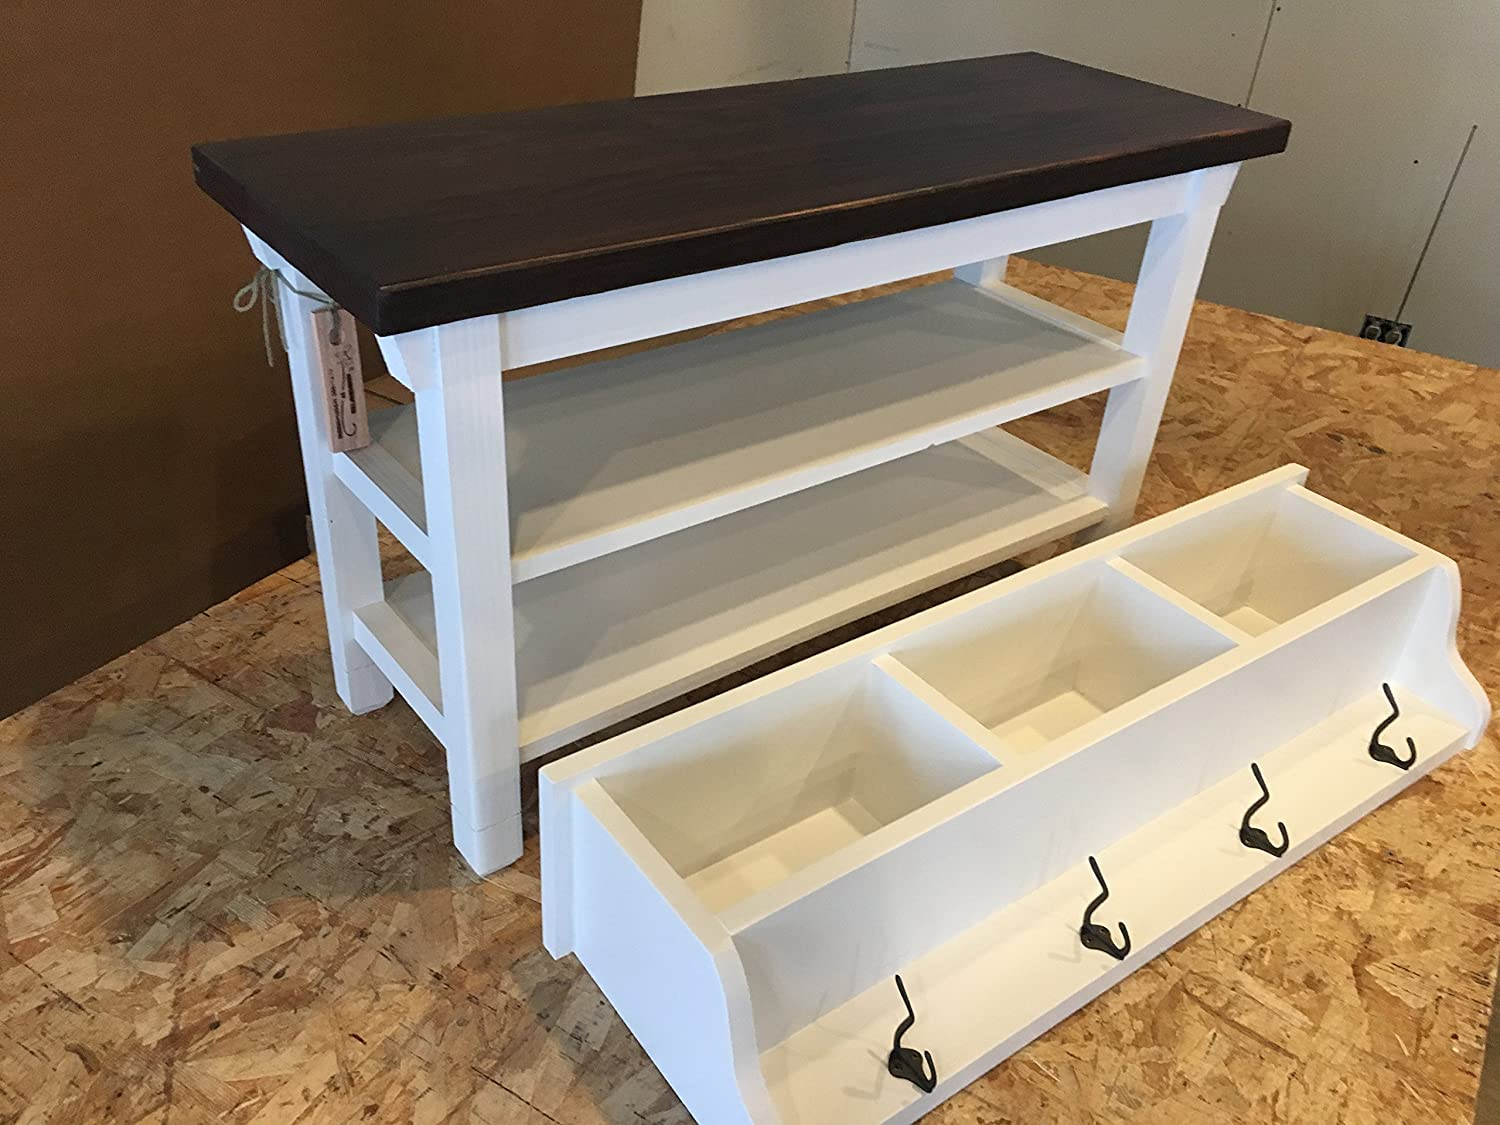 32 Hallway//Mud Room//Foyer Bench With Second Shoe Shelf and Matching Coat Rack//Cubbie